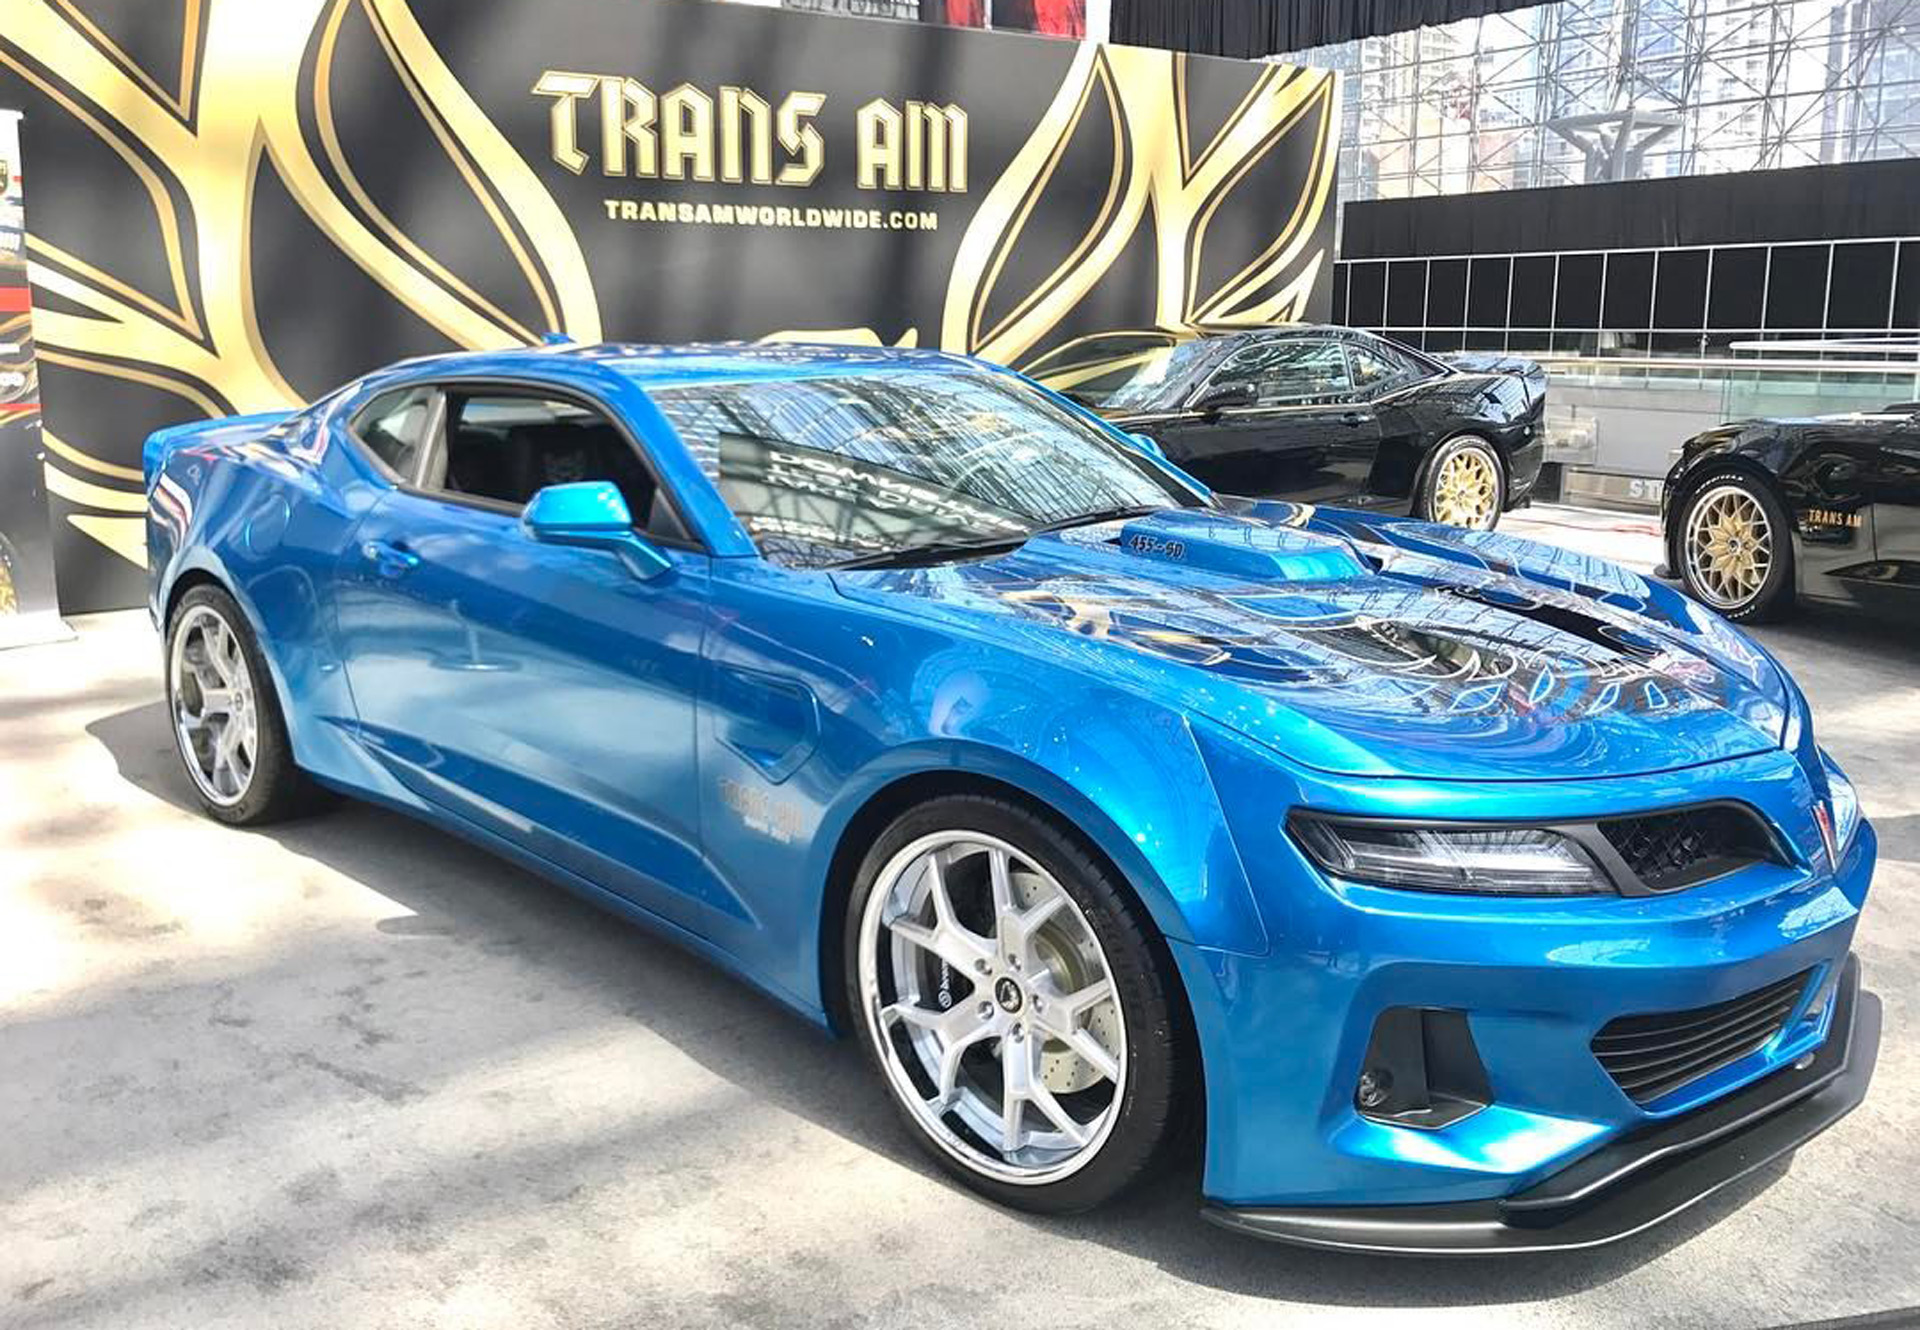 6th gen camaro trans am conversion comes packing 1 000. Black Bedroom Furniture Sets. Home Design Ideas